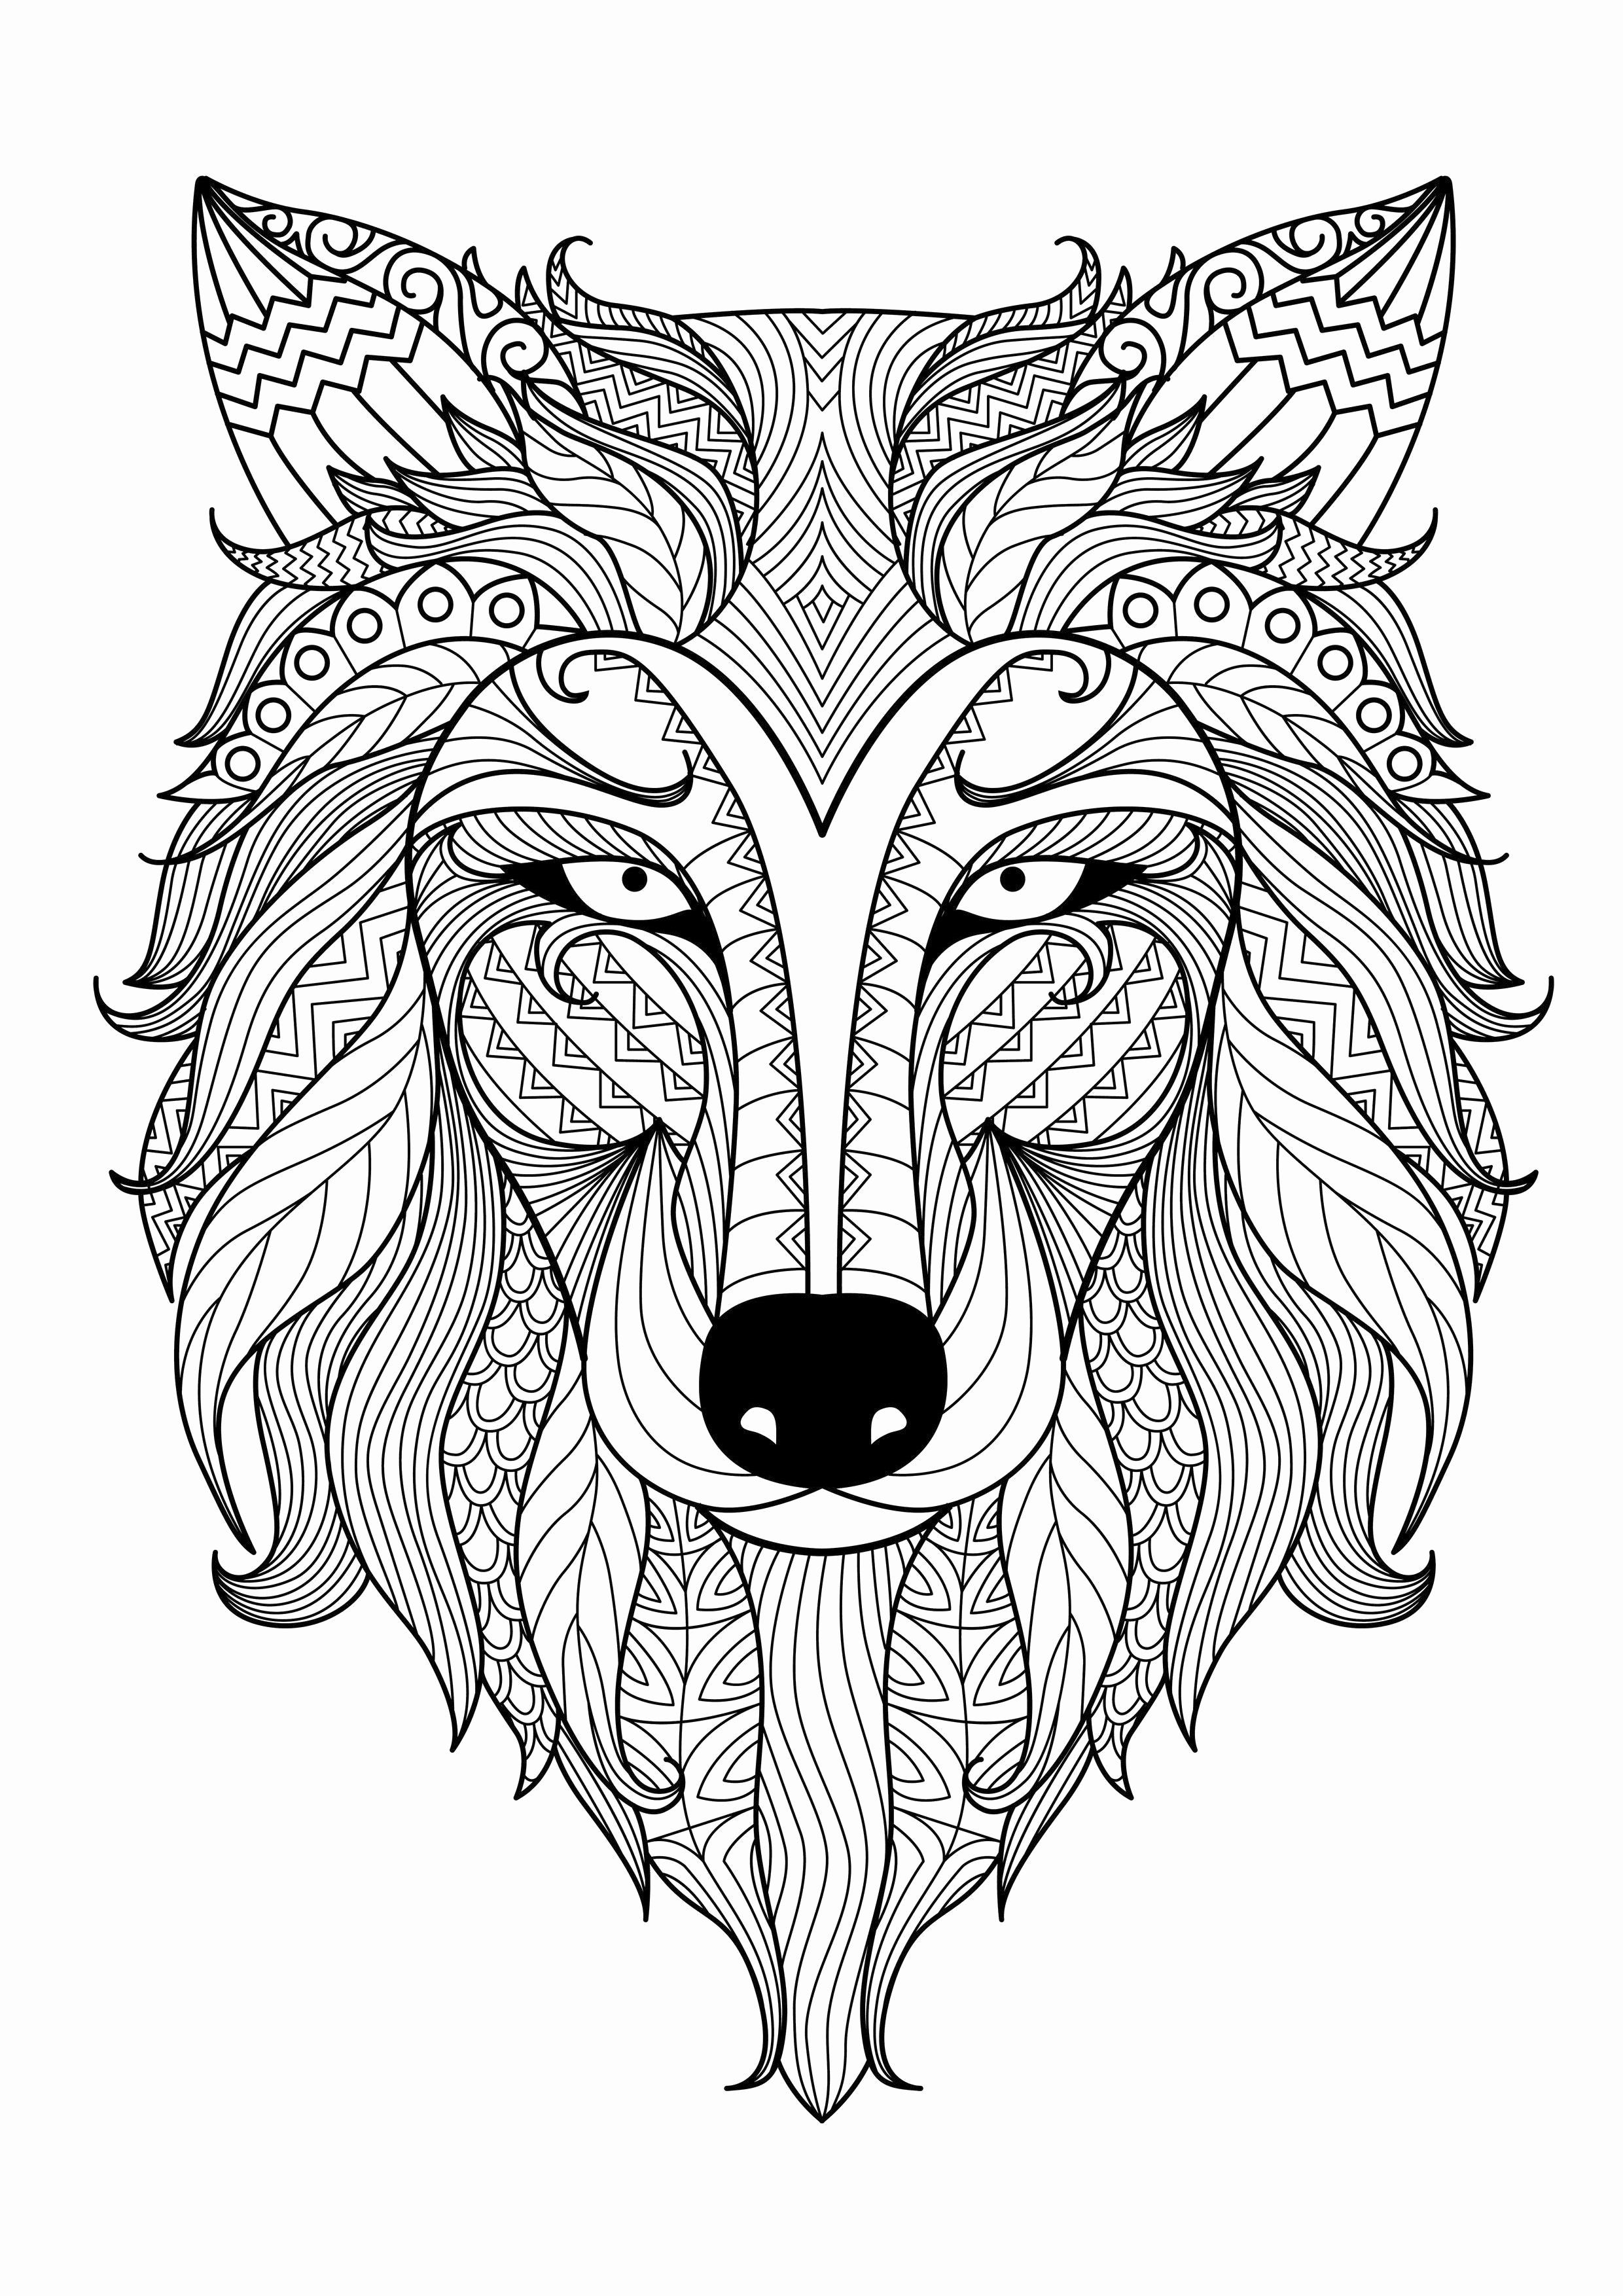 Coloring Pages Of Animal Heads Inspirational Animal Pattern Drawing At Getdrawings Animal Coloring Pages Animal Coloring Books Mandala Coloring